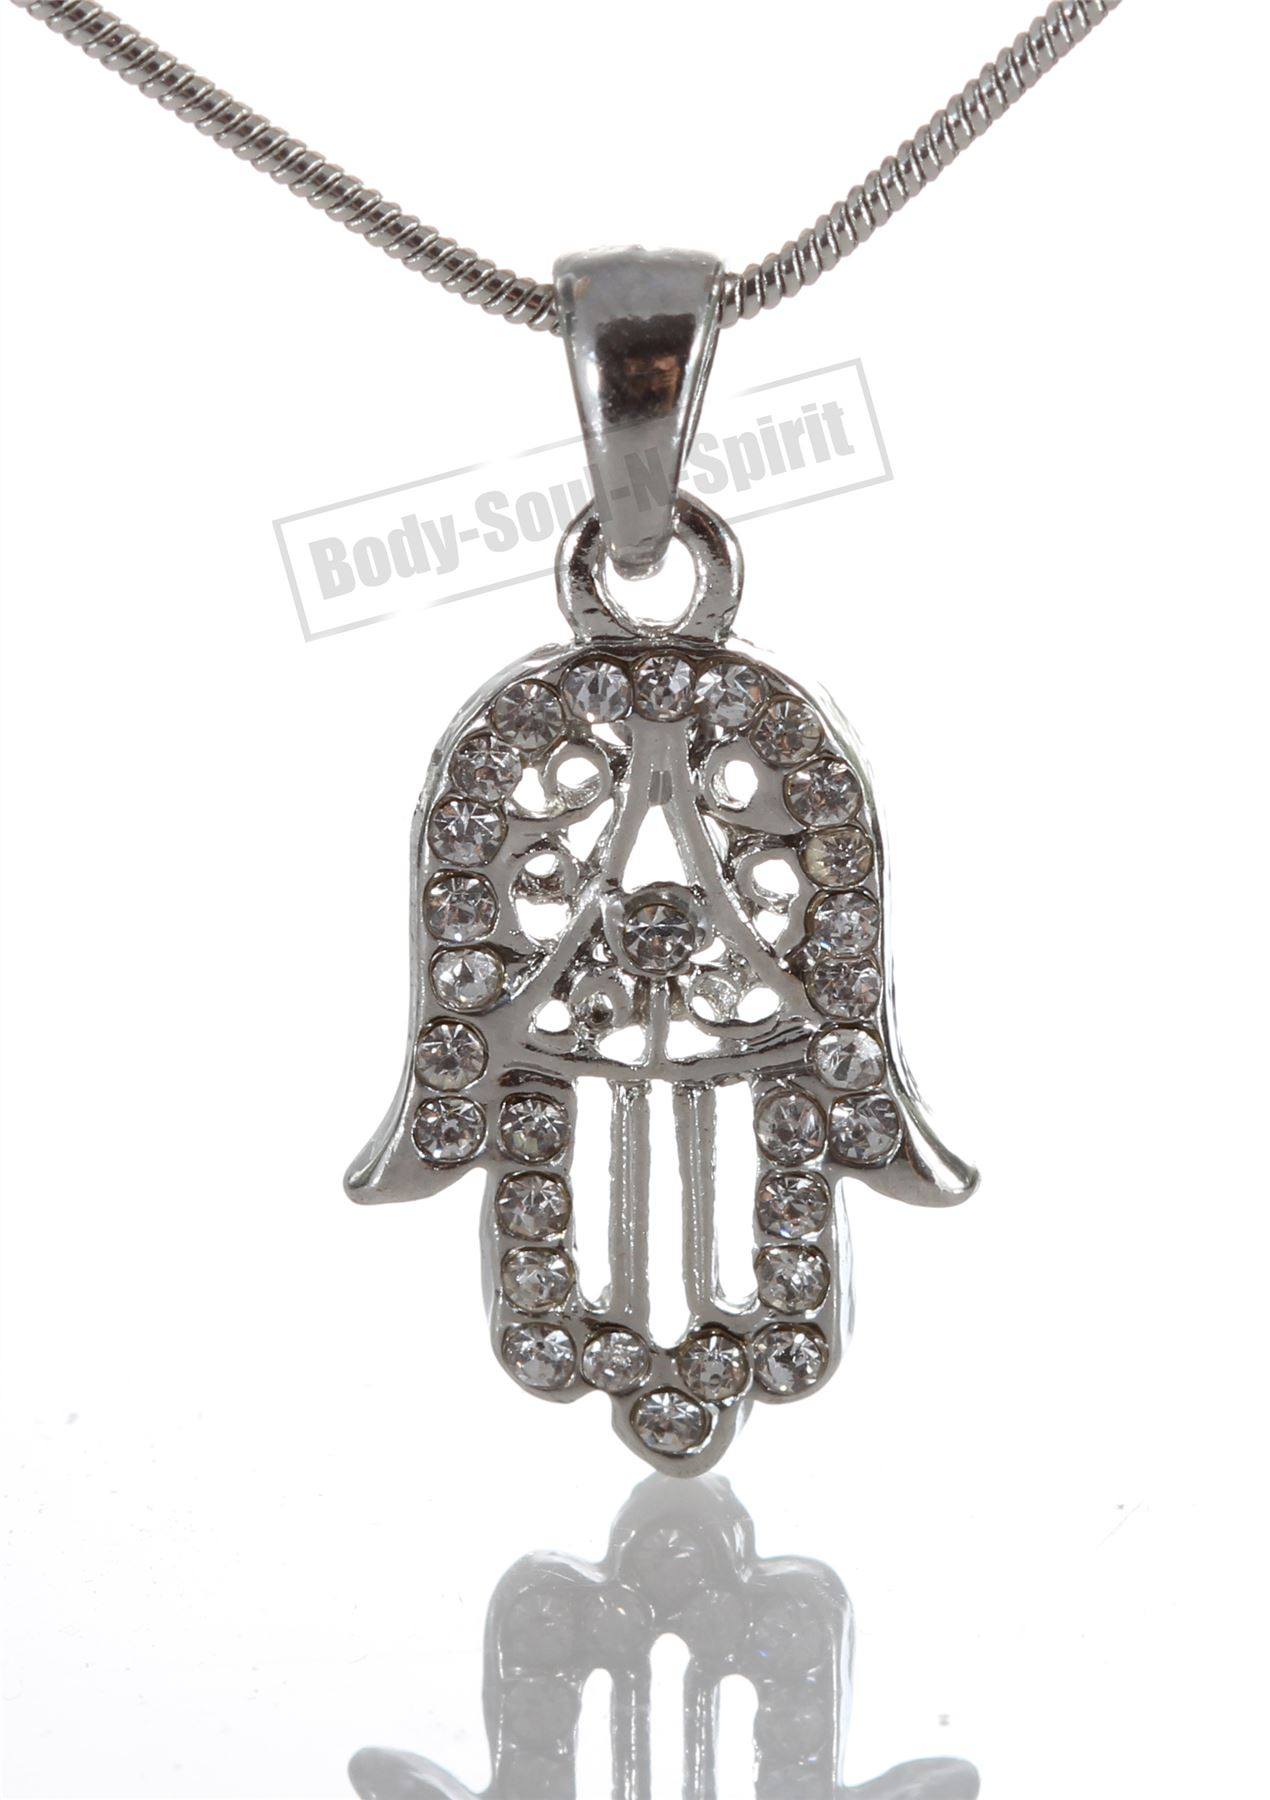 Jewish lucky charm hamsa necklace silver plated pendant judaica the hamsa arabic meaning five is an ancient hand shaped symbol of protection originating in the middle east predating judaism christianity and islam biocorpaavc Images